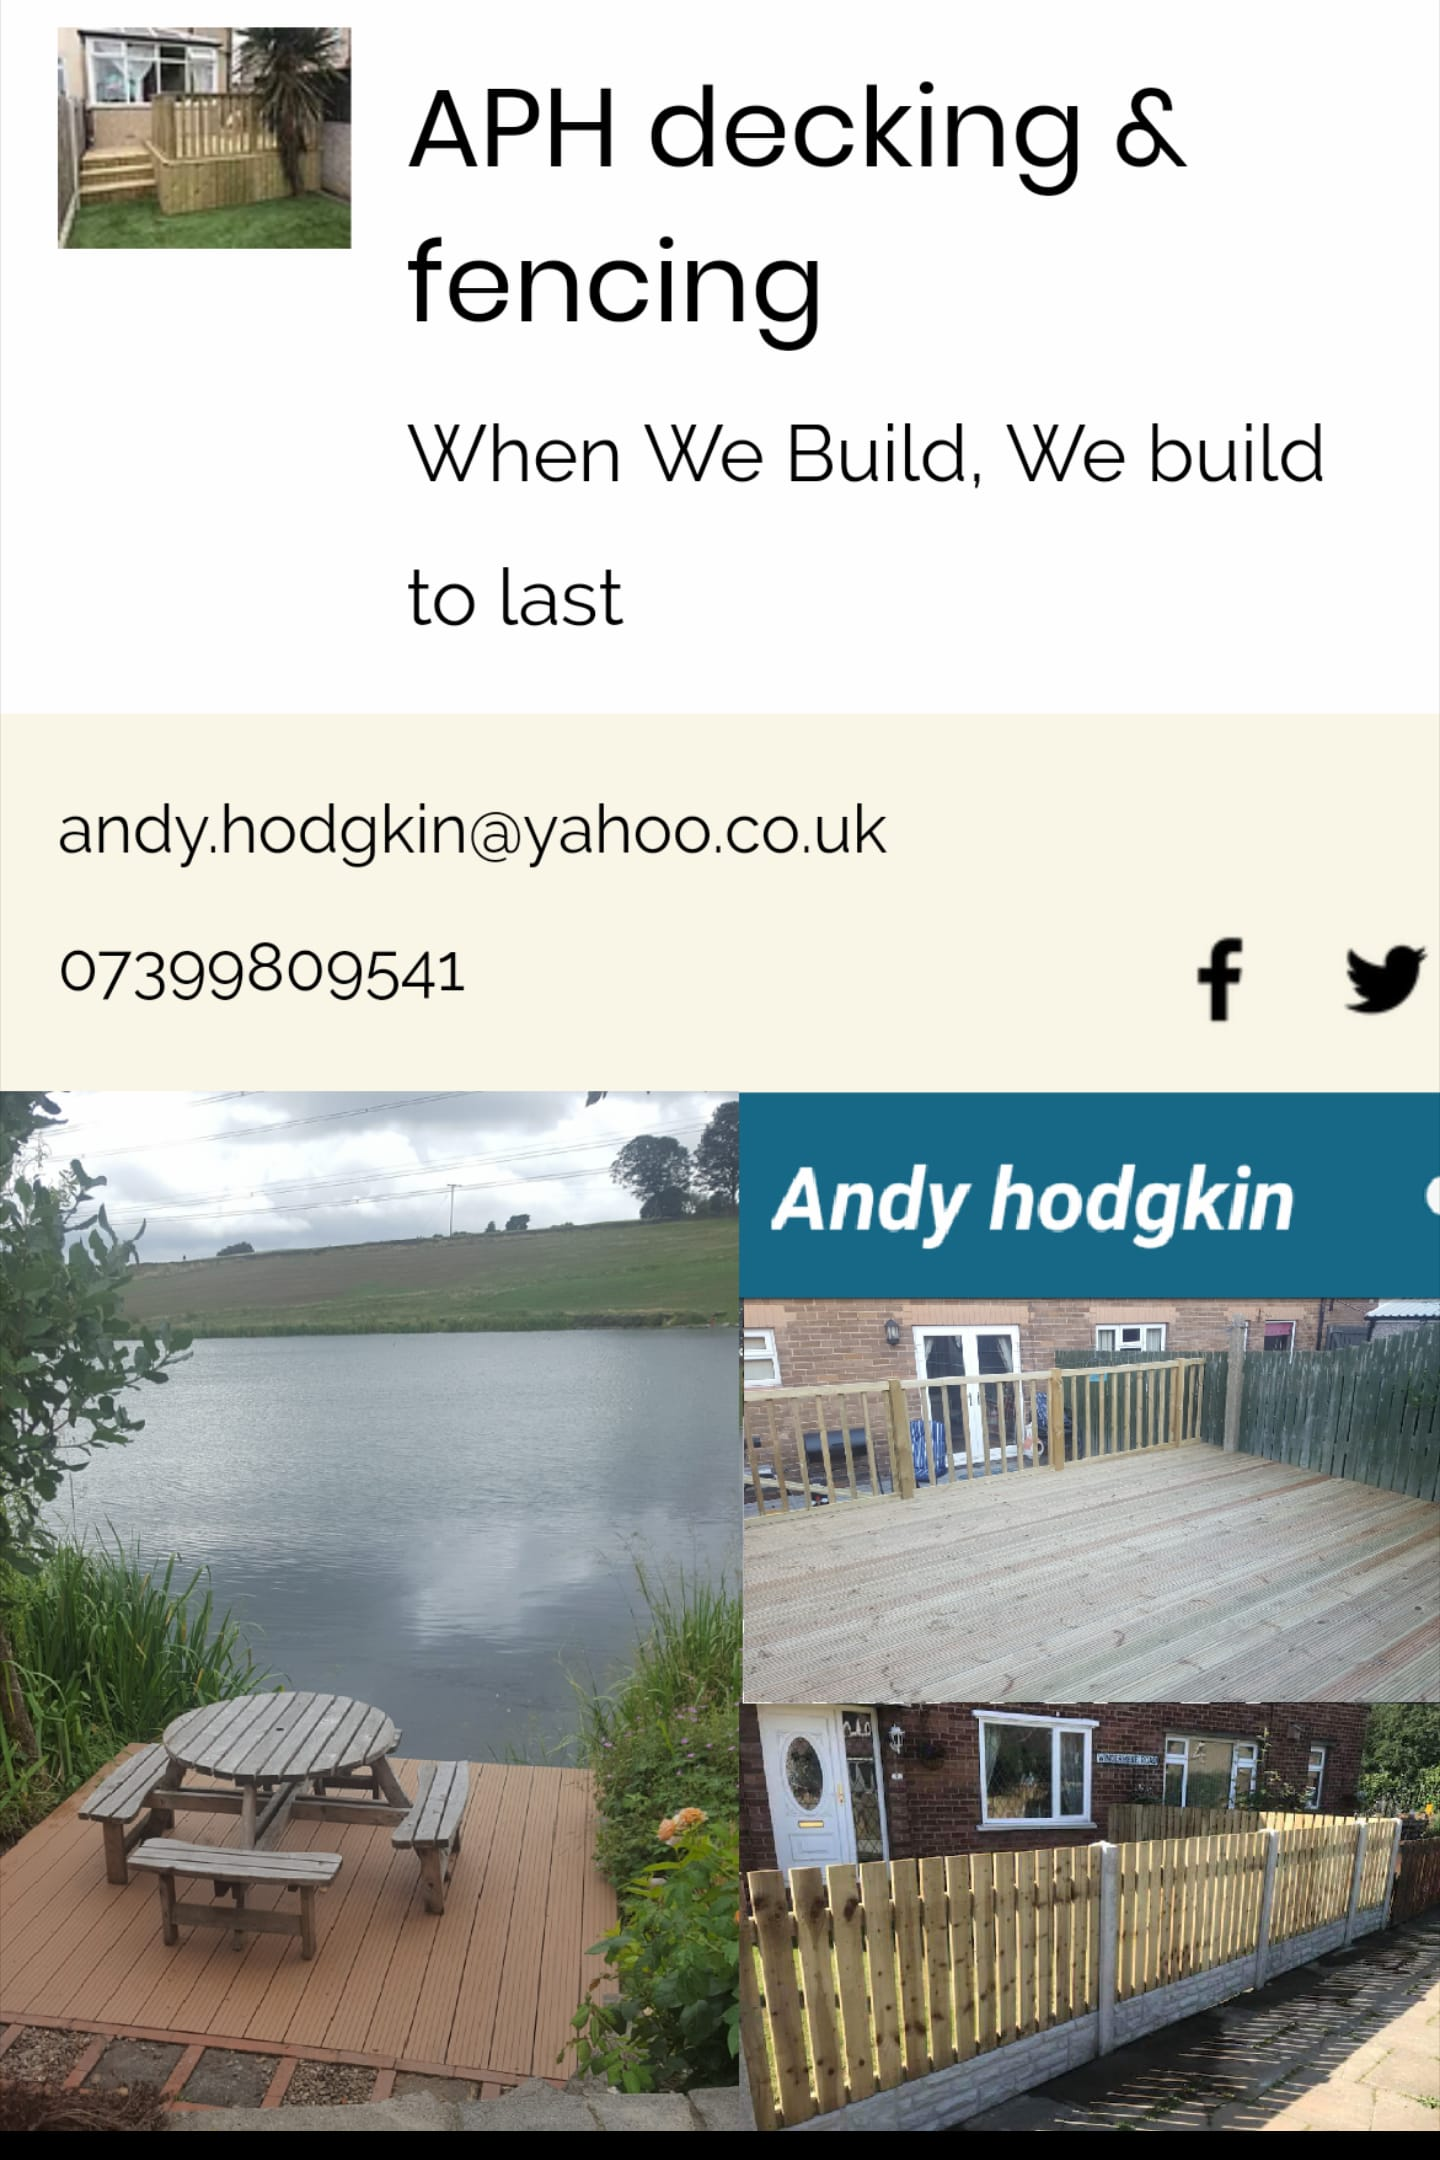 APH Decking & Fencing Service